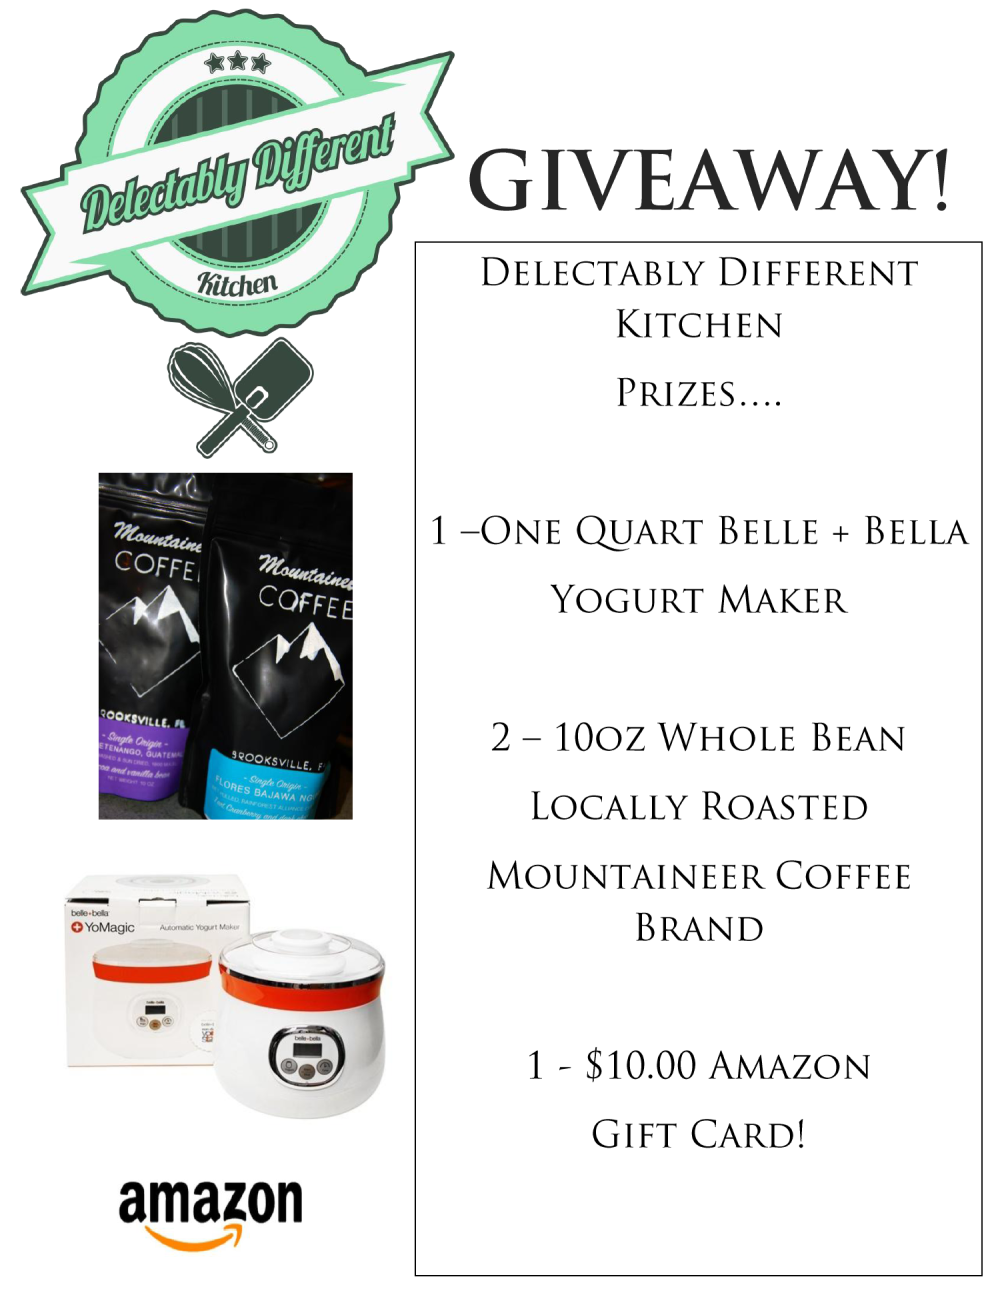 march giveaway from delectably different kitchen belle + bella amazon mountaineer coffee free